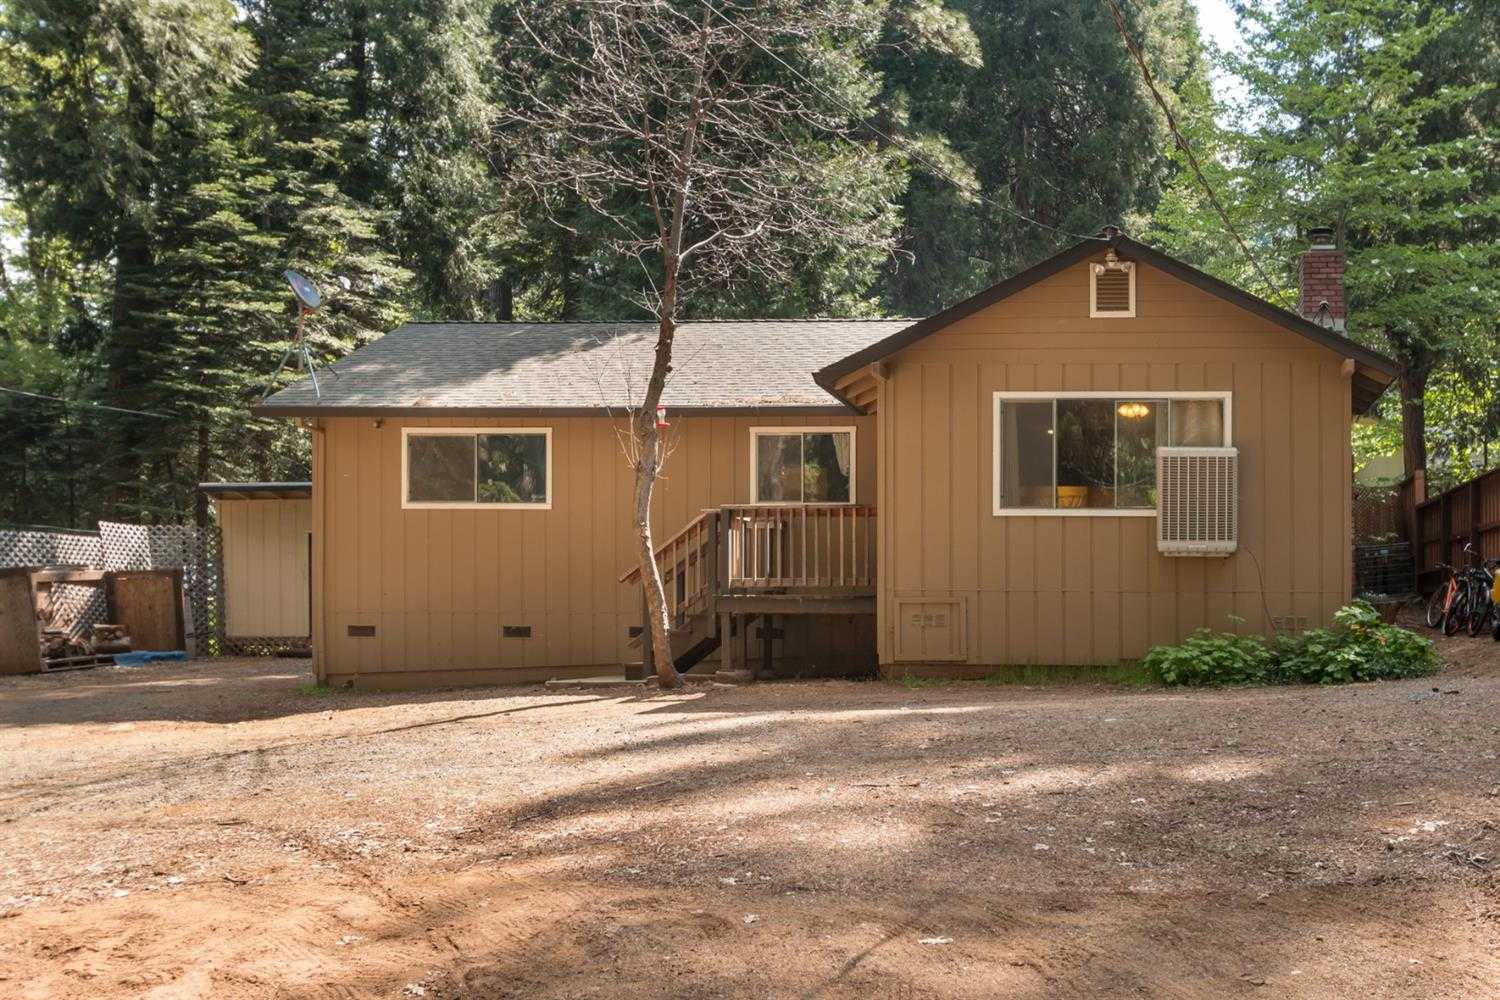 $298,000 - 3Br/2Ba -  for Sale in Pollock Pines